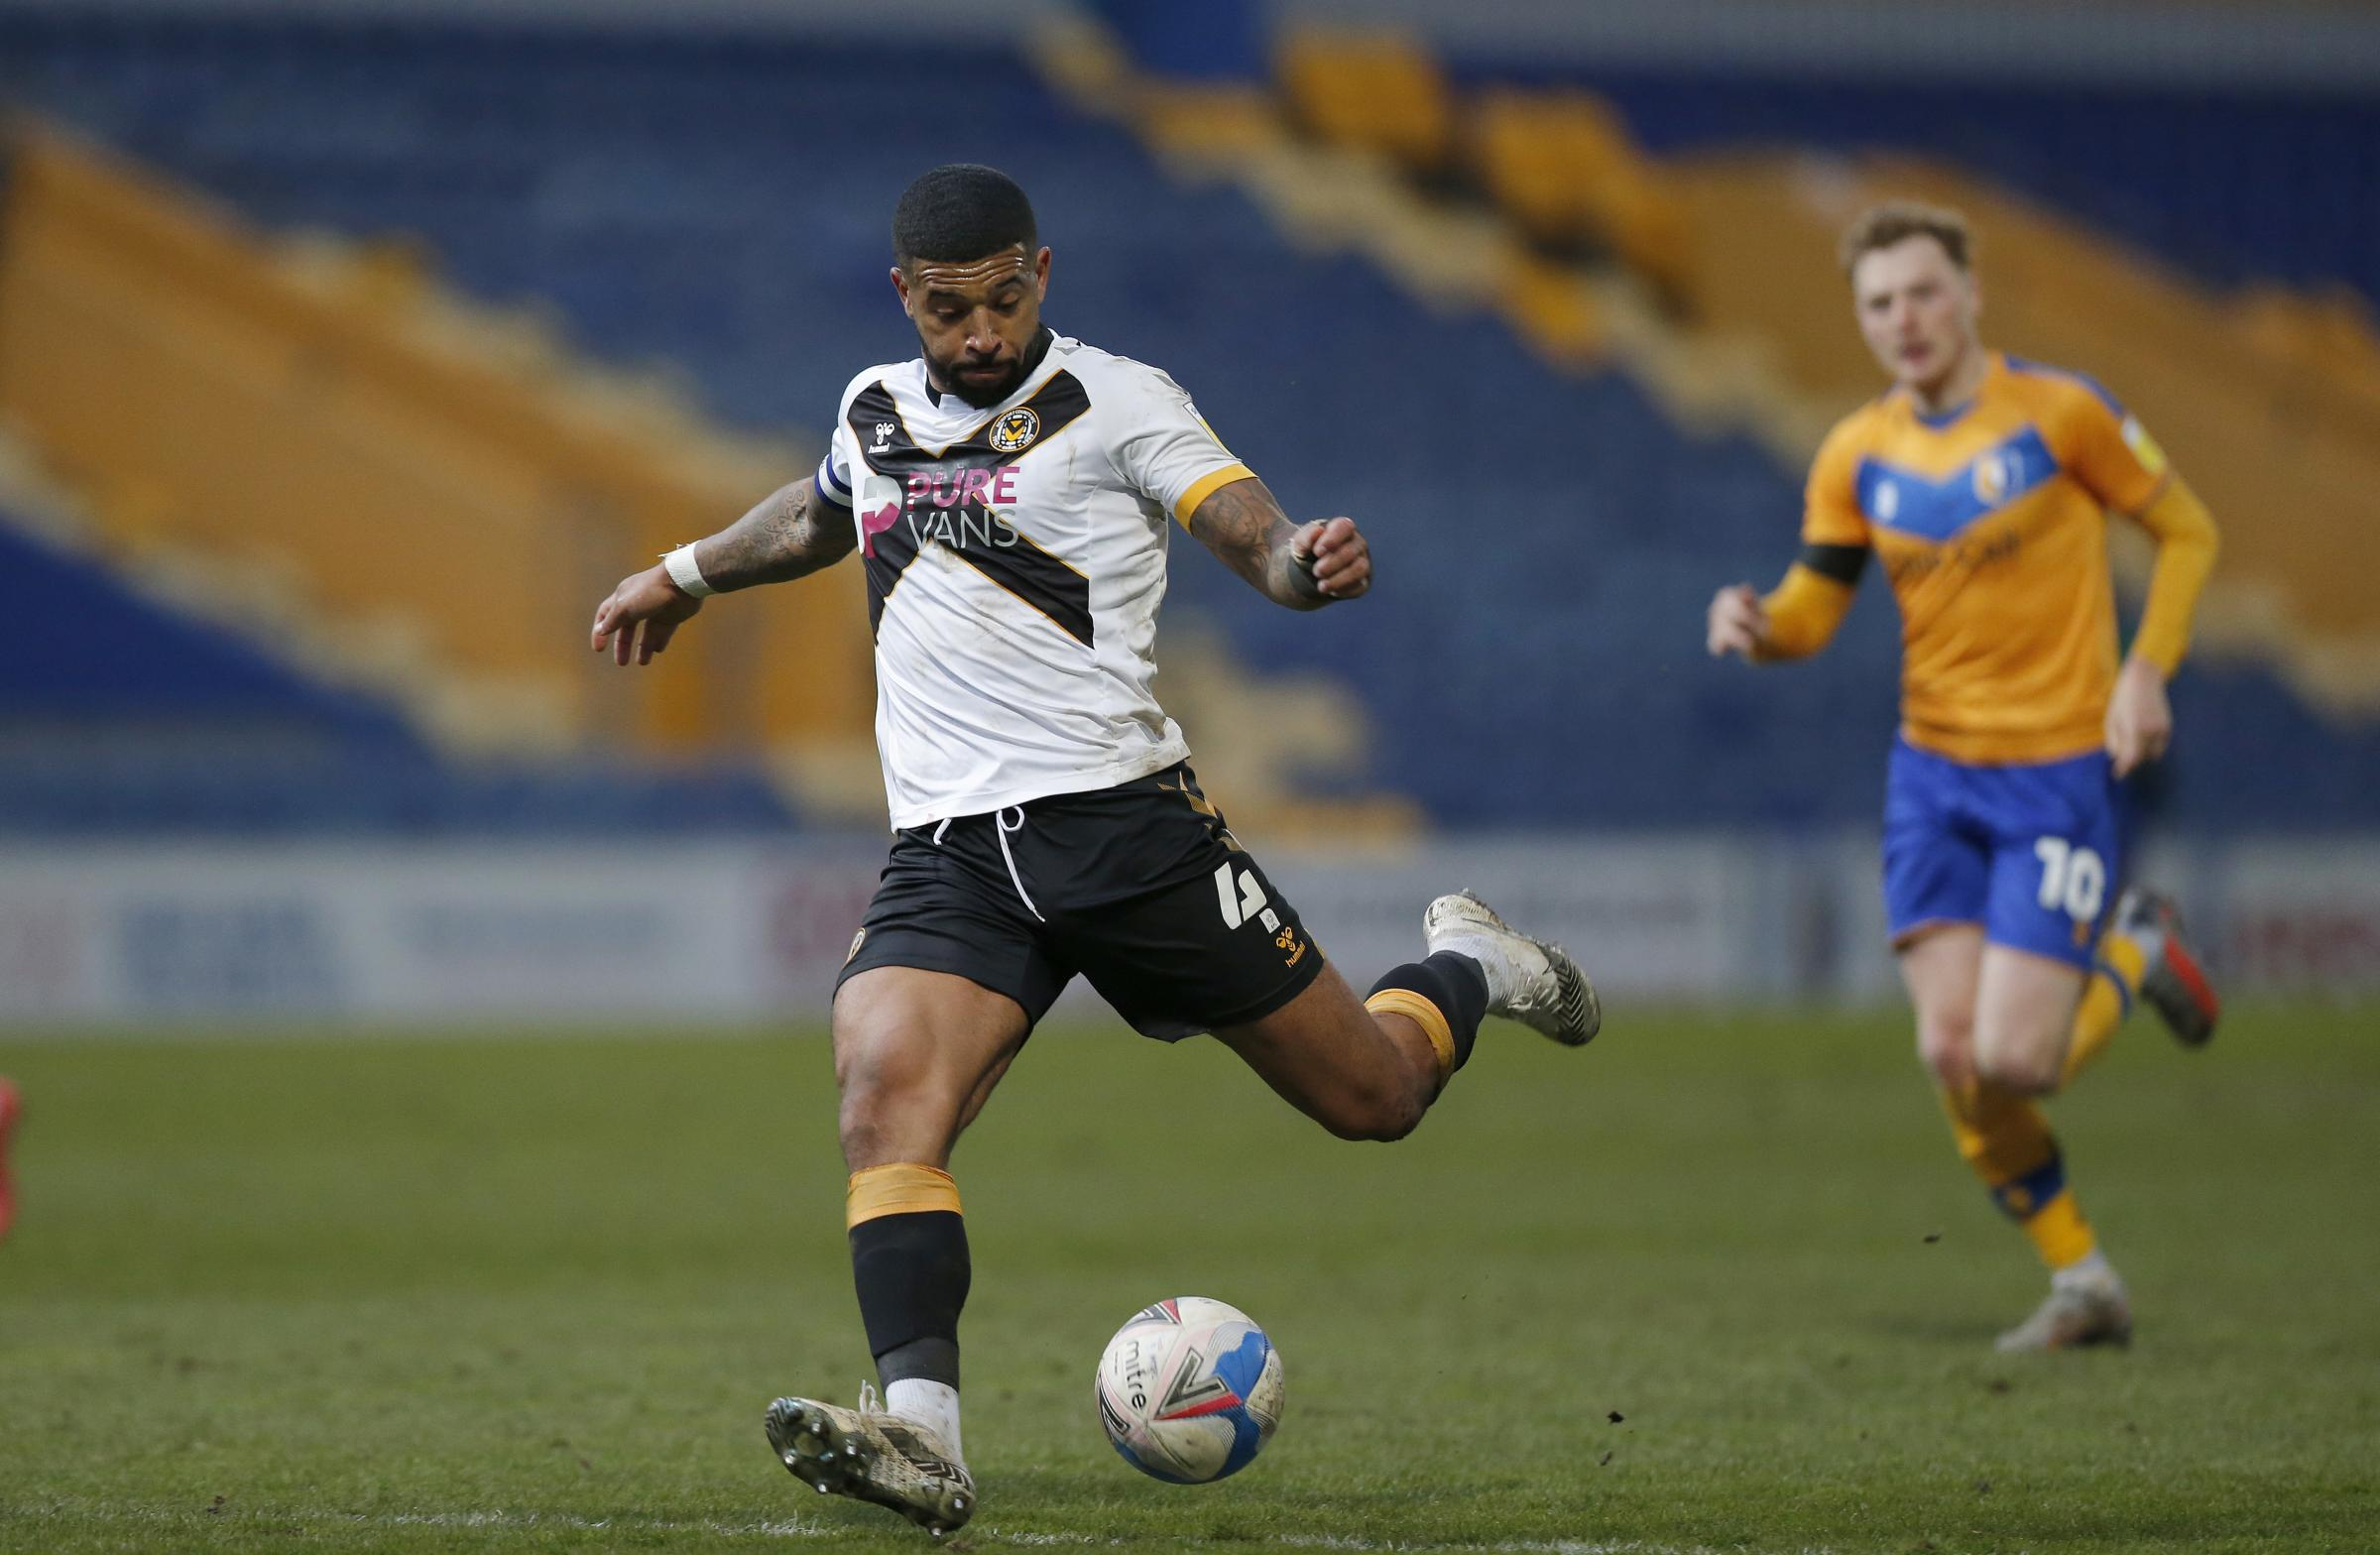 INFLUENTIAL: Newport County AFC captain Joss Labadie